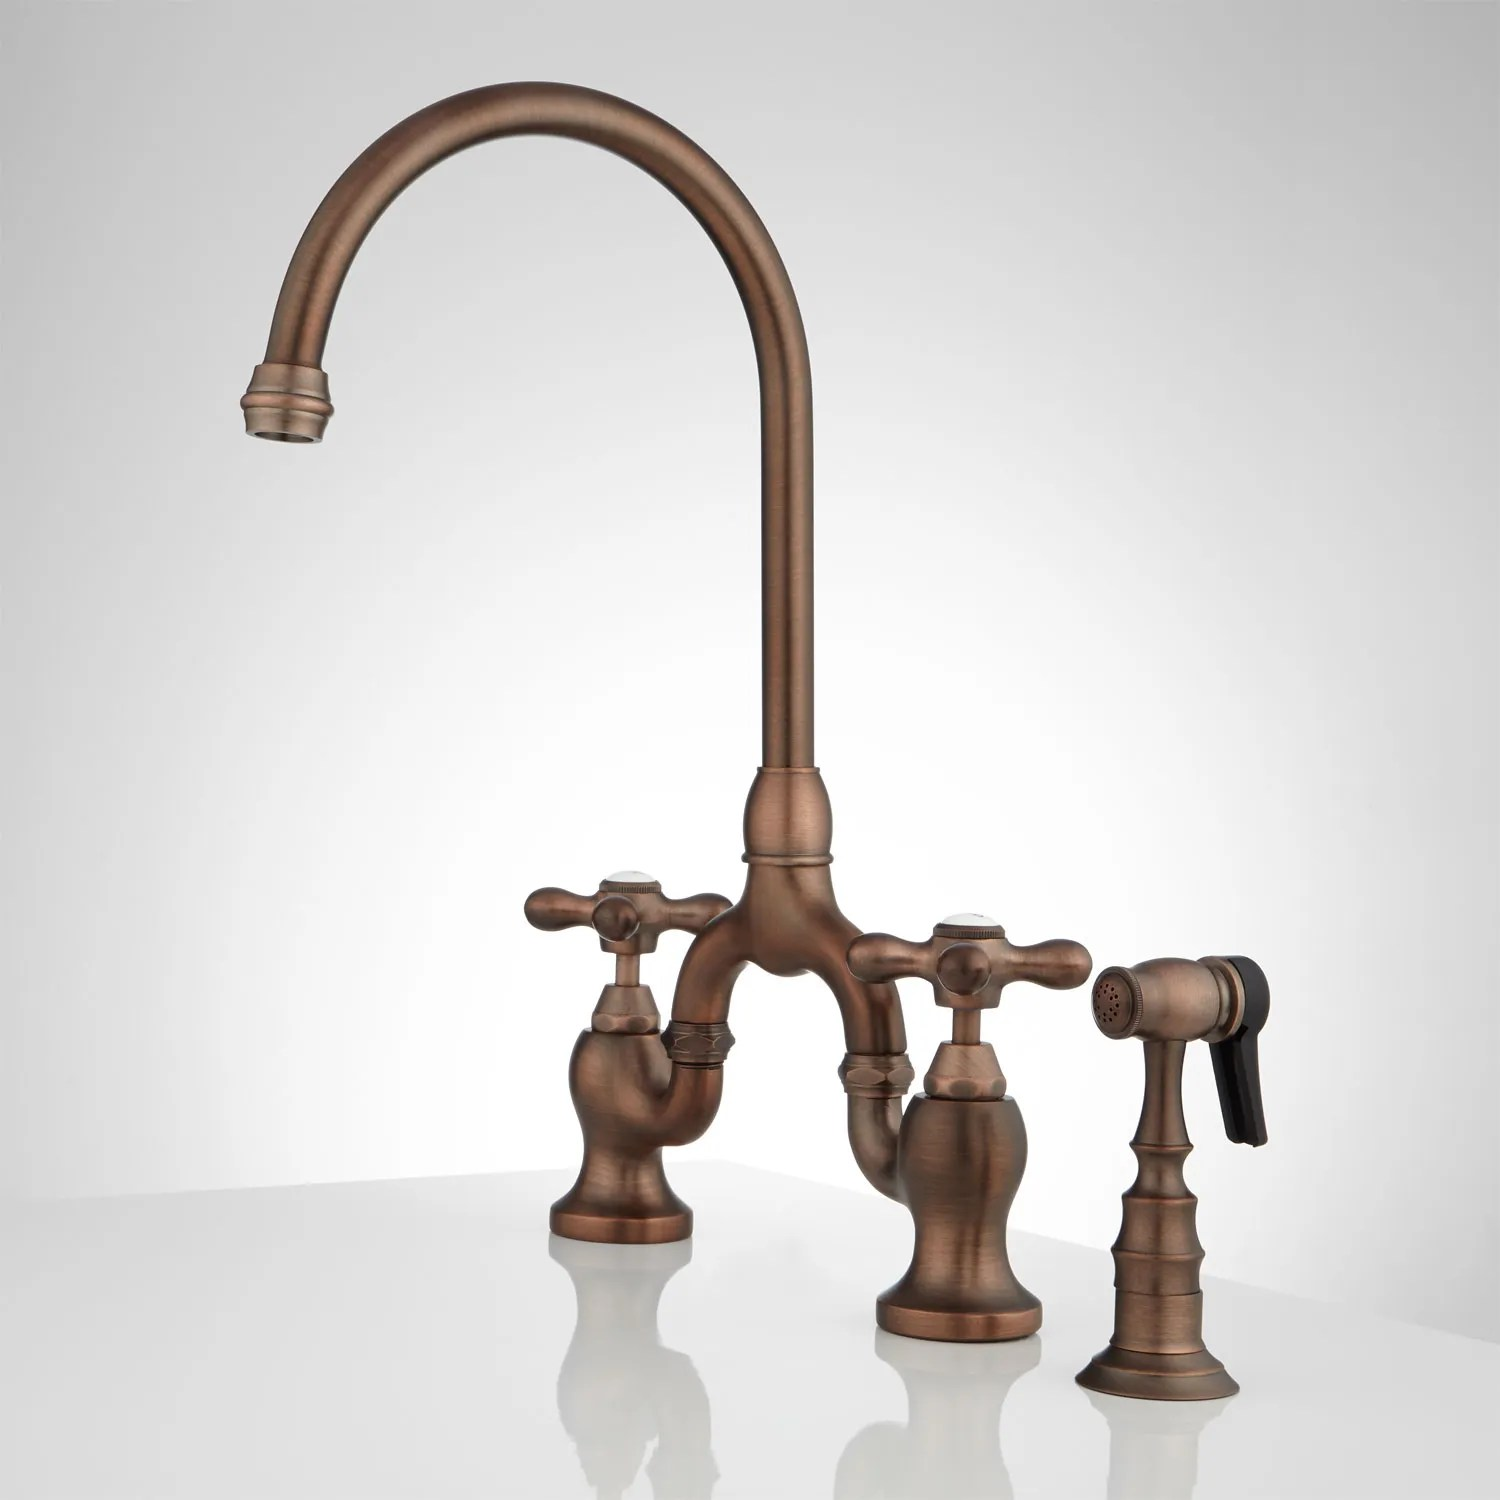 Ponticello Bridge Kitchen Faucet With Side Spray Cross